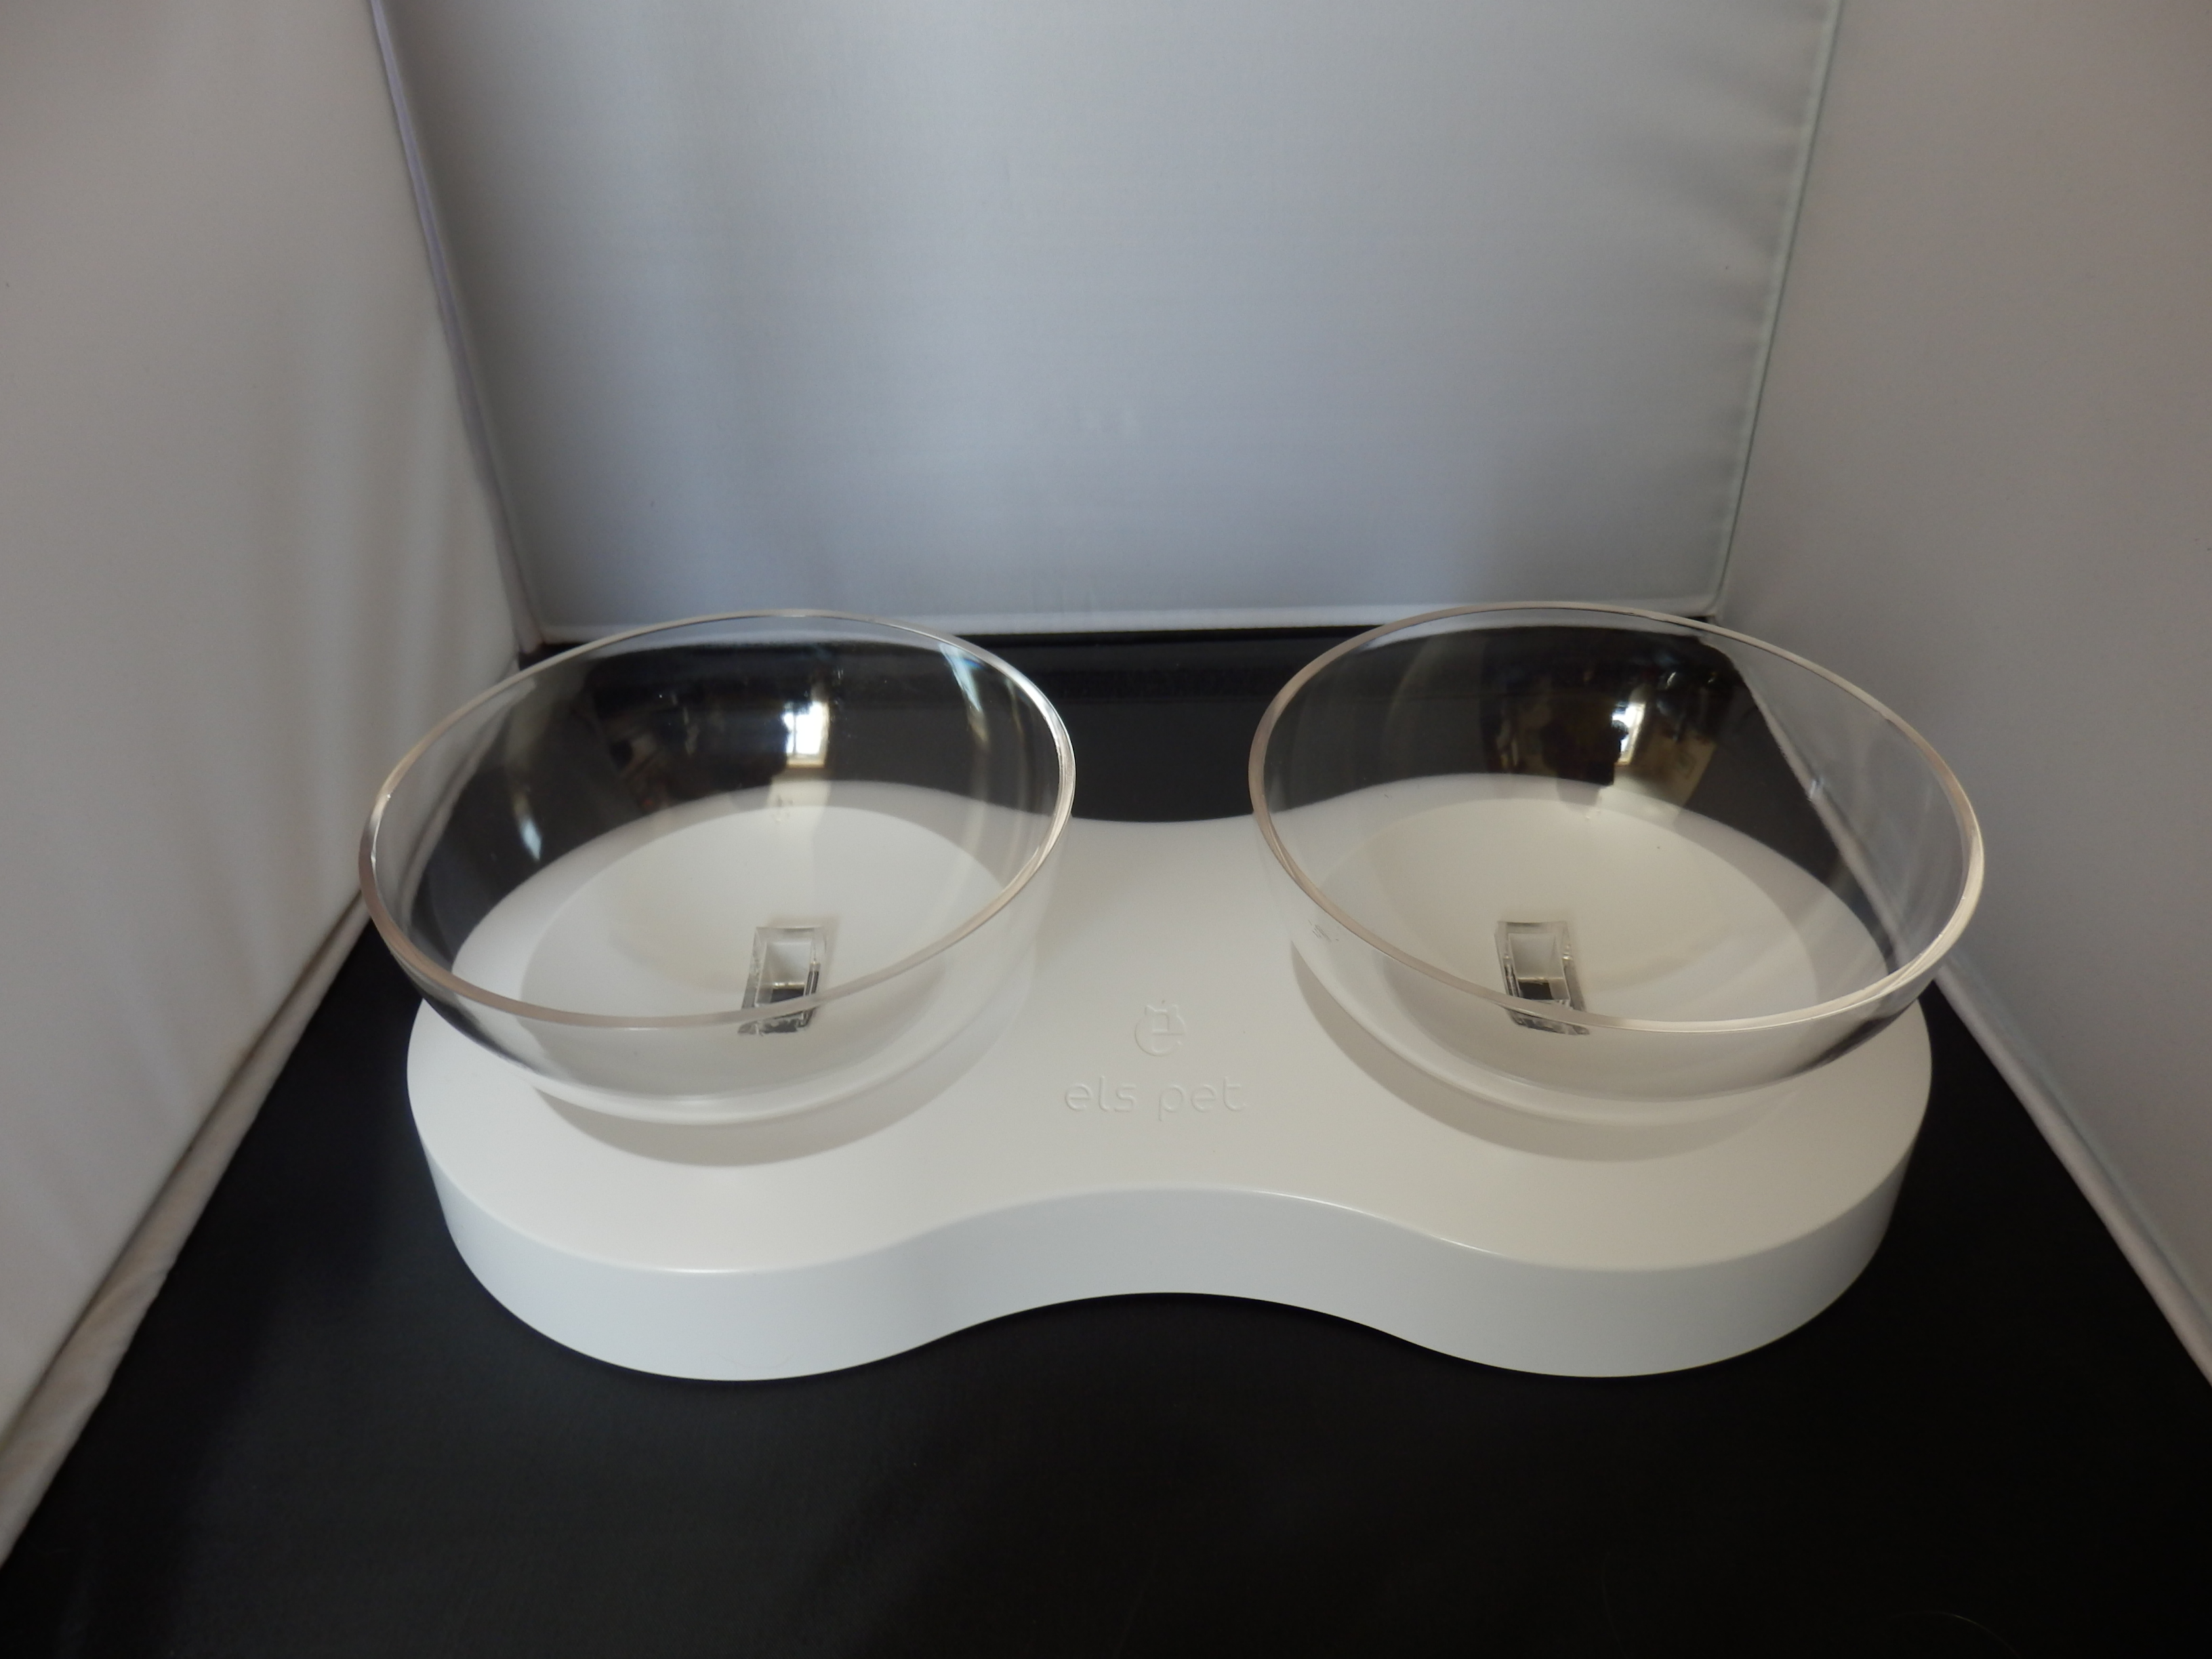 SKJIND Tilted Cat Transparent Non-Spill Double Bowls with Raised Stand